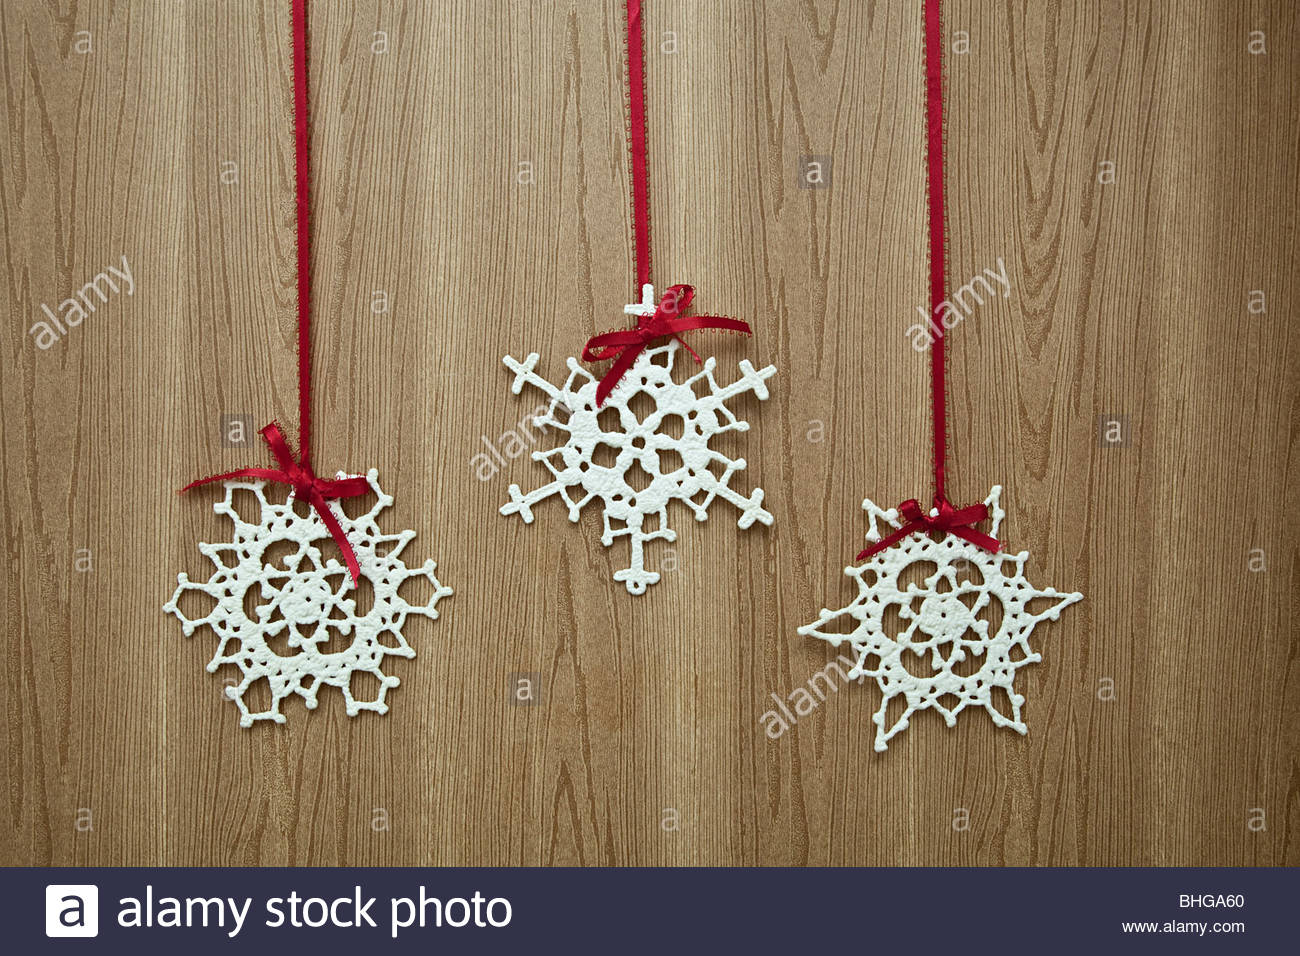 decor jpg gallery christmas ideas snowflakes add photo image of decoration diy photos decorations abeafbeba snowflake decorating